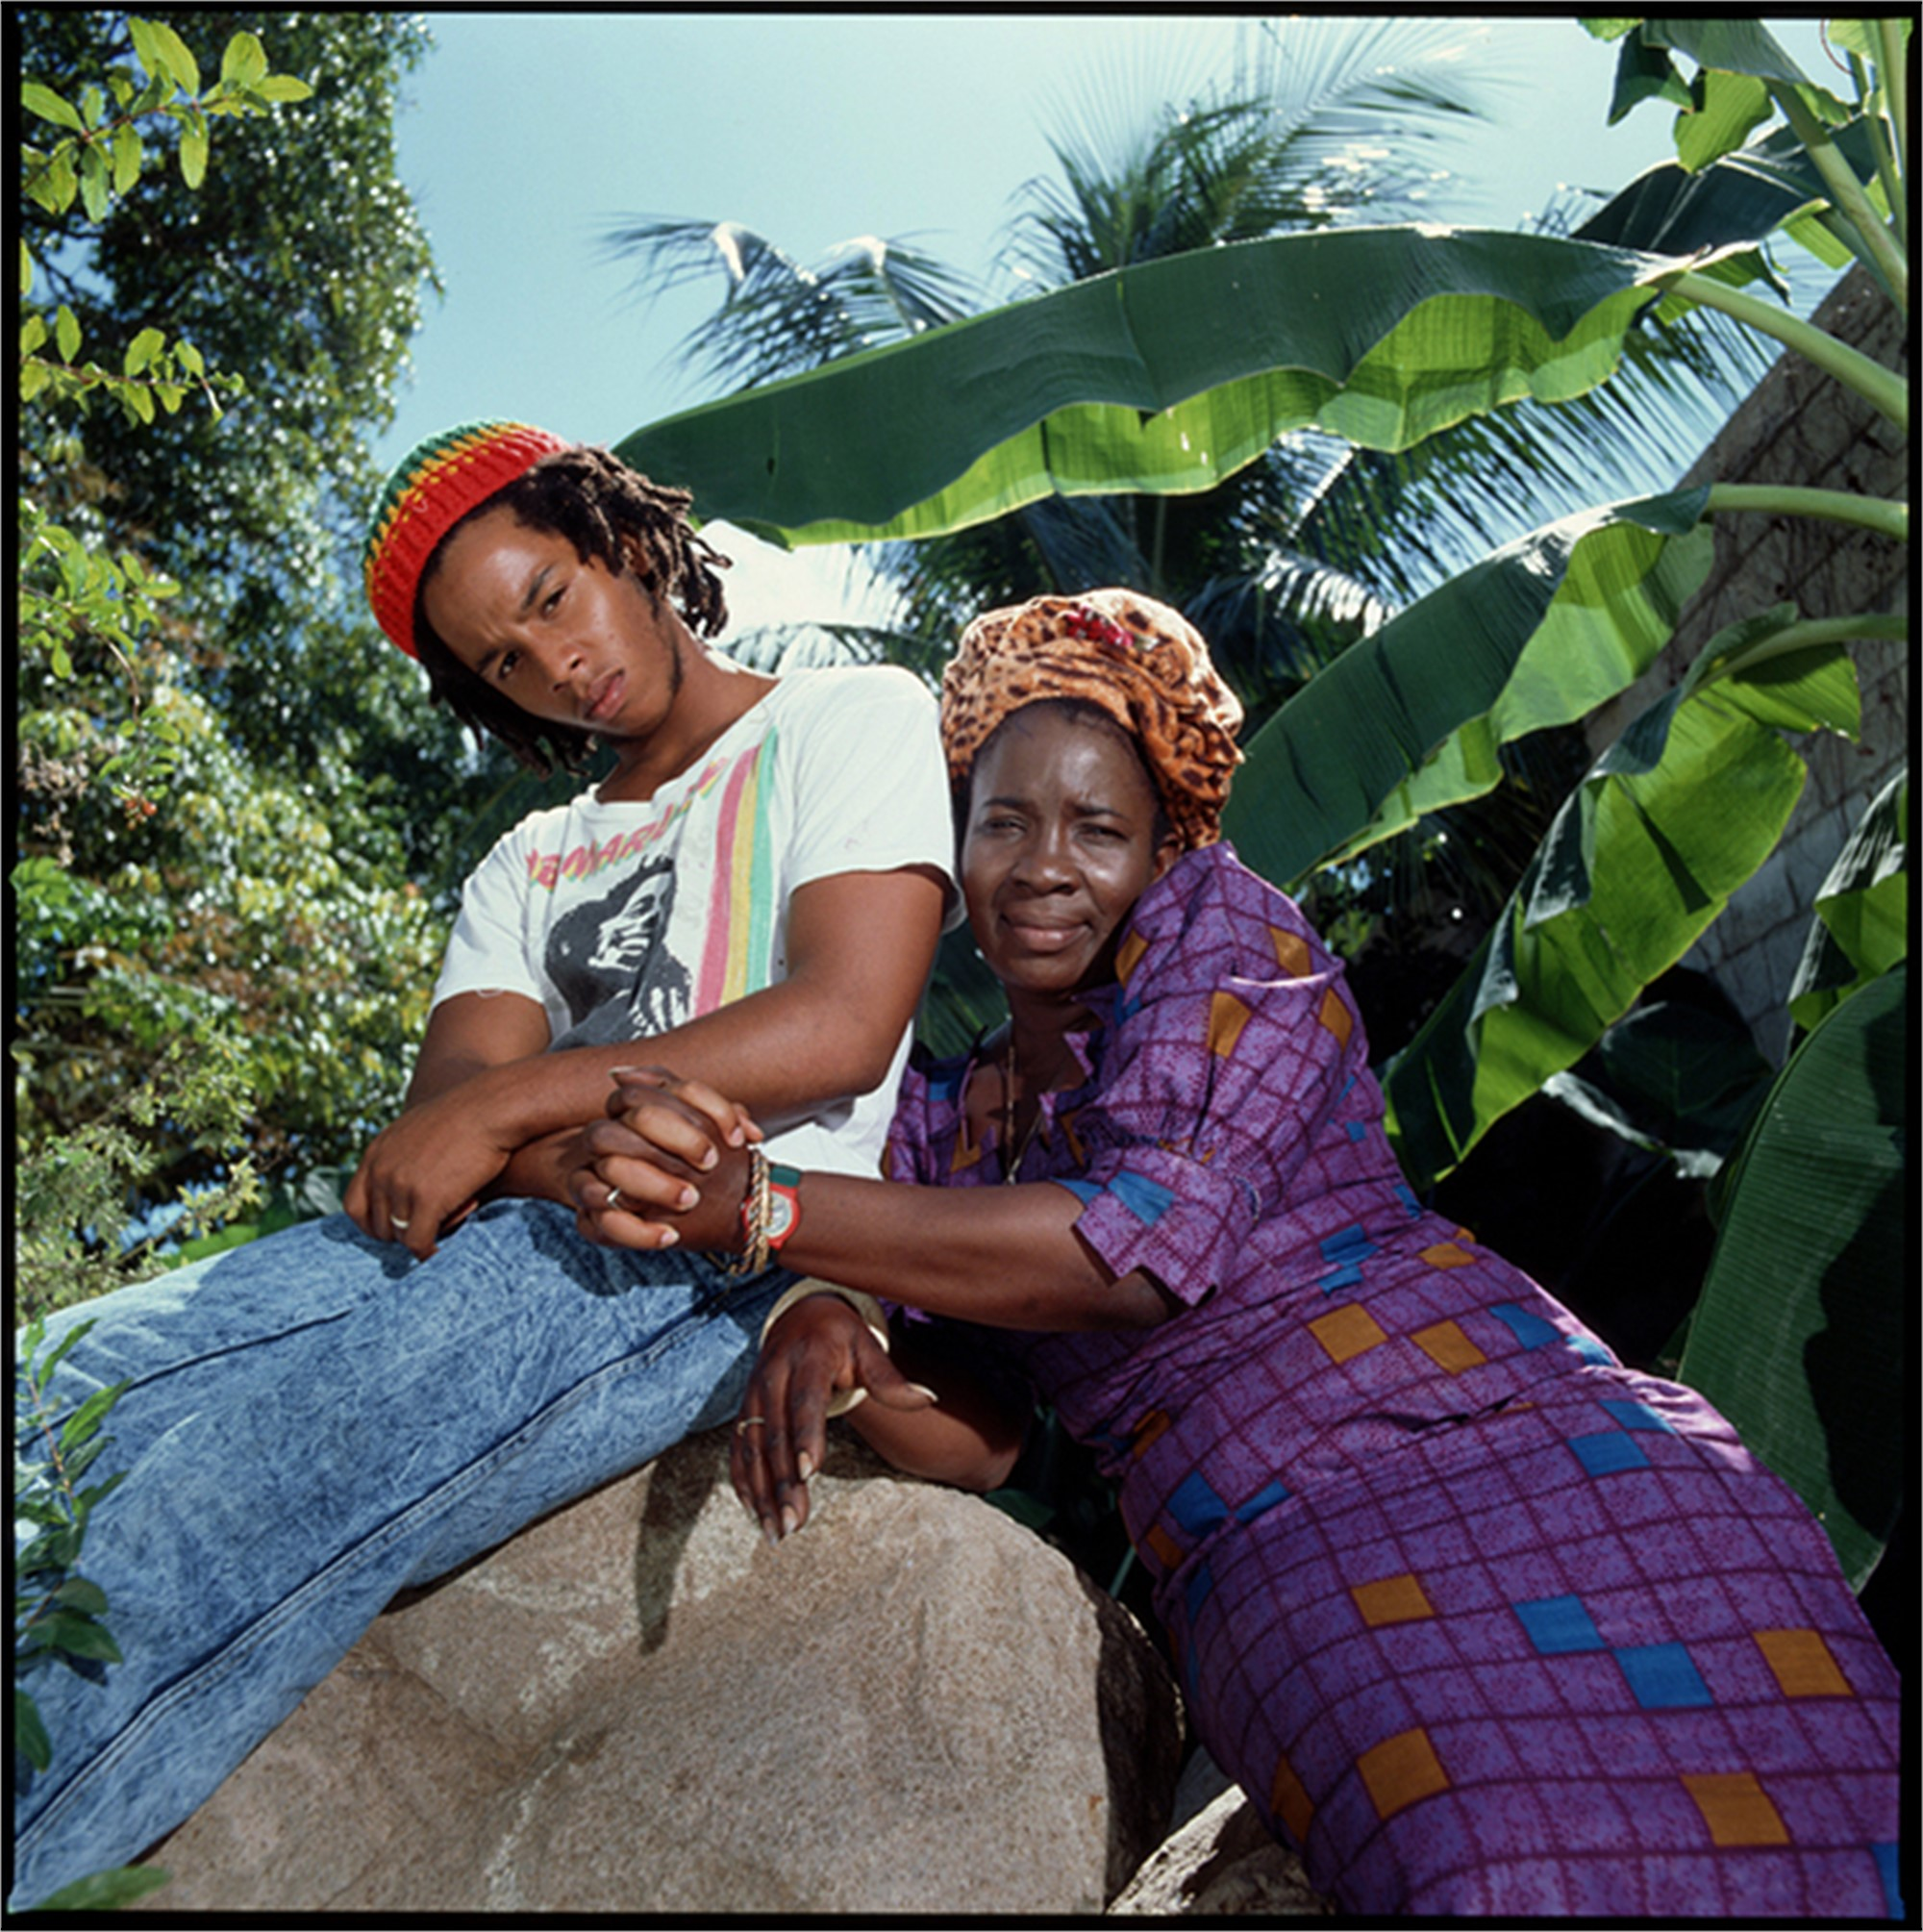 88011 Ziggy Marley With Rita Marley 1988 Color by Timothy White